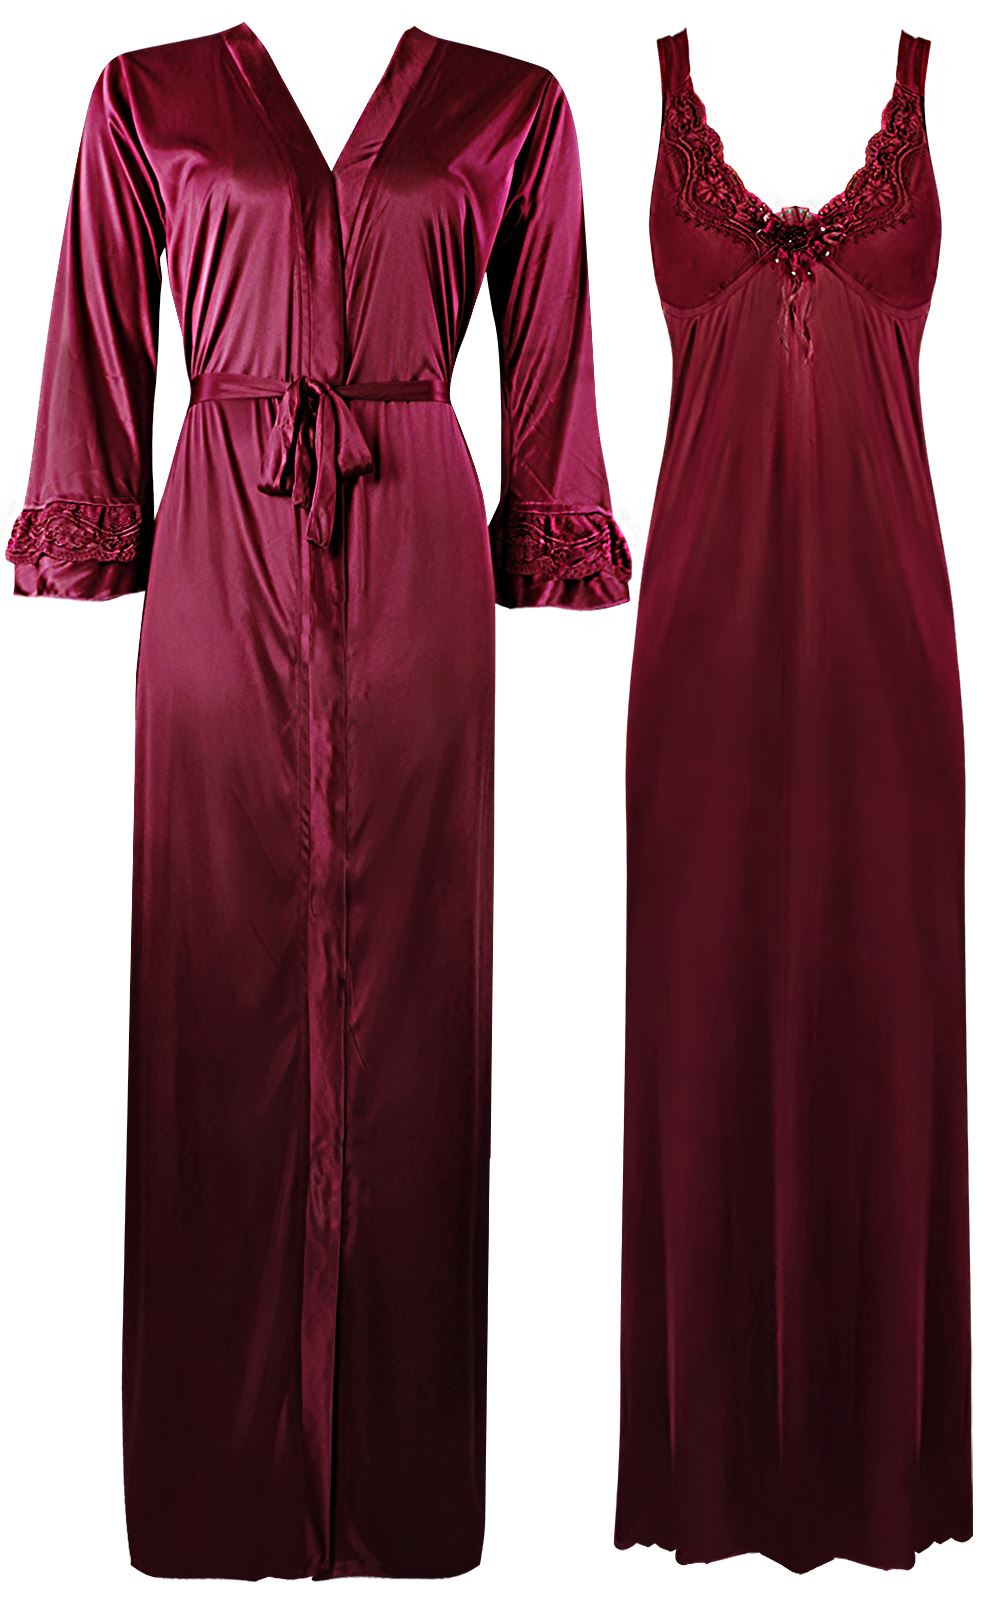 Color: Deep Red 2 Piece Satin Nighty and Robe With Long Sleeve Dressing Gown Size: XL